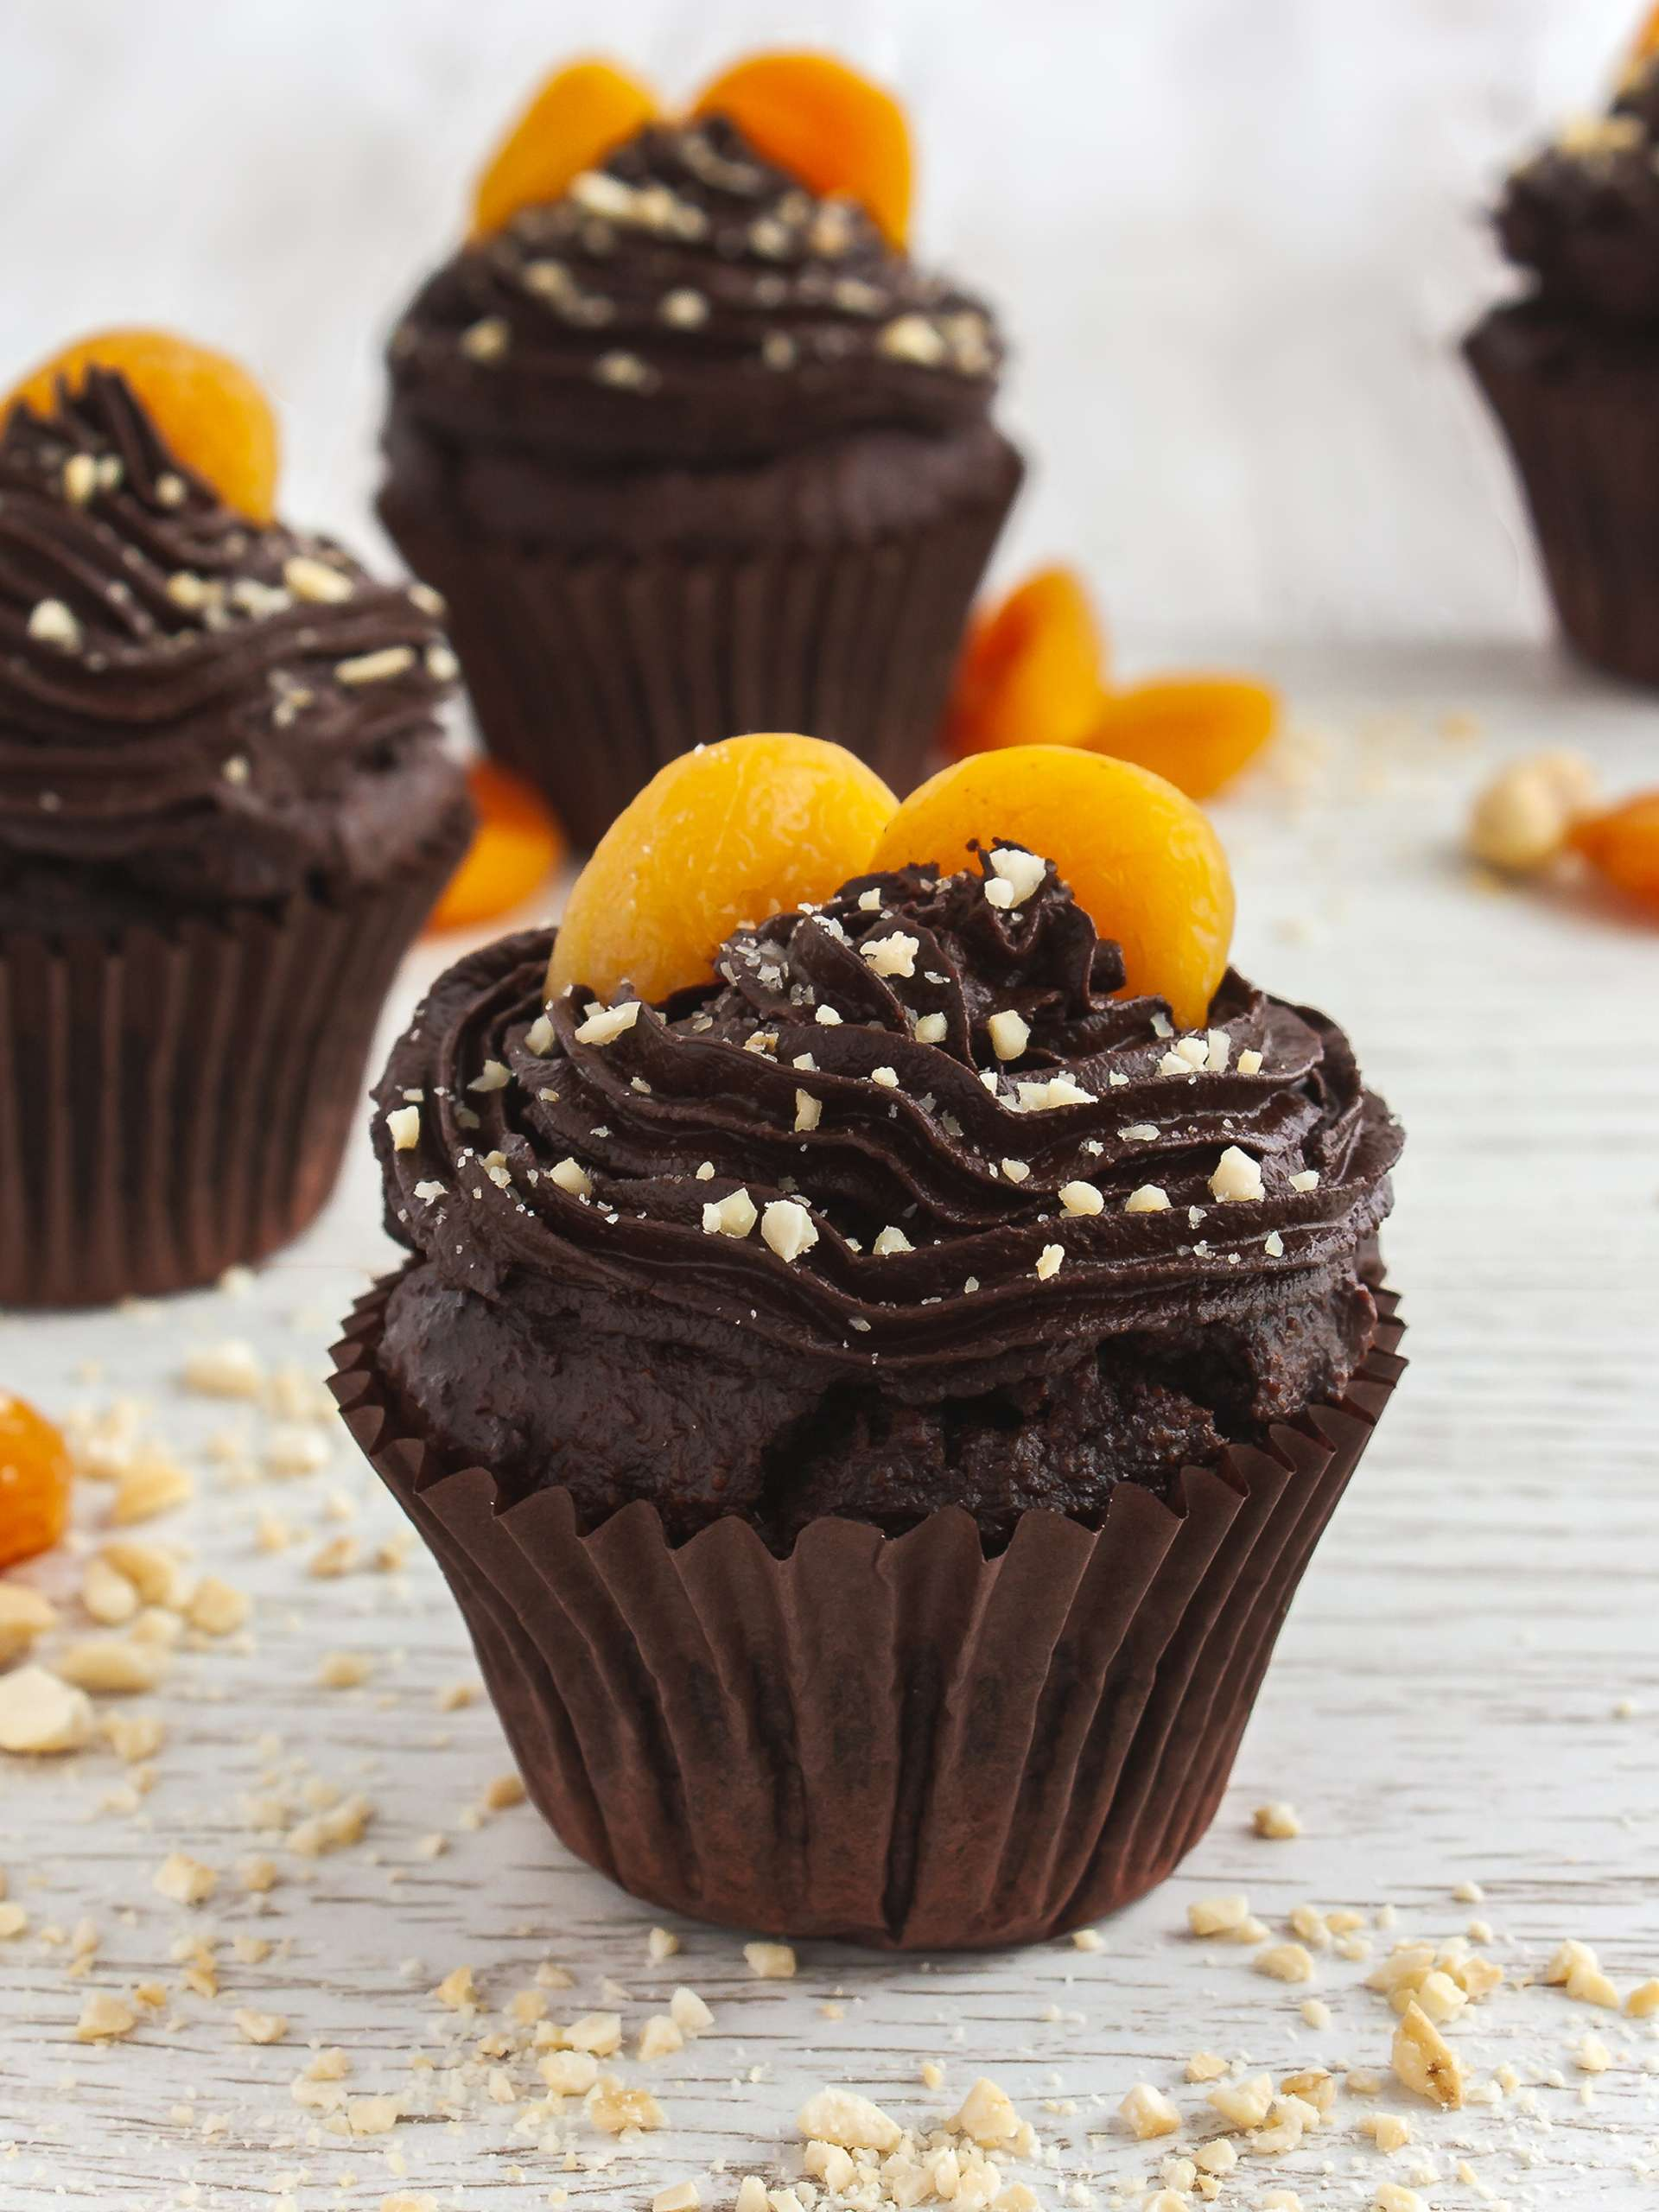 Gluten Free Vegan Chocolate Cupcakes with Apricot Jam Recipe Thumbnail